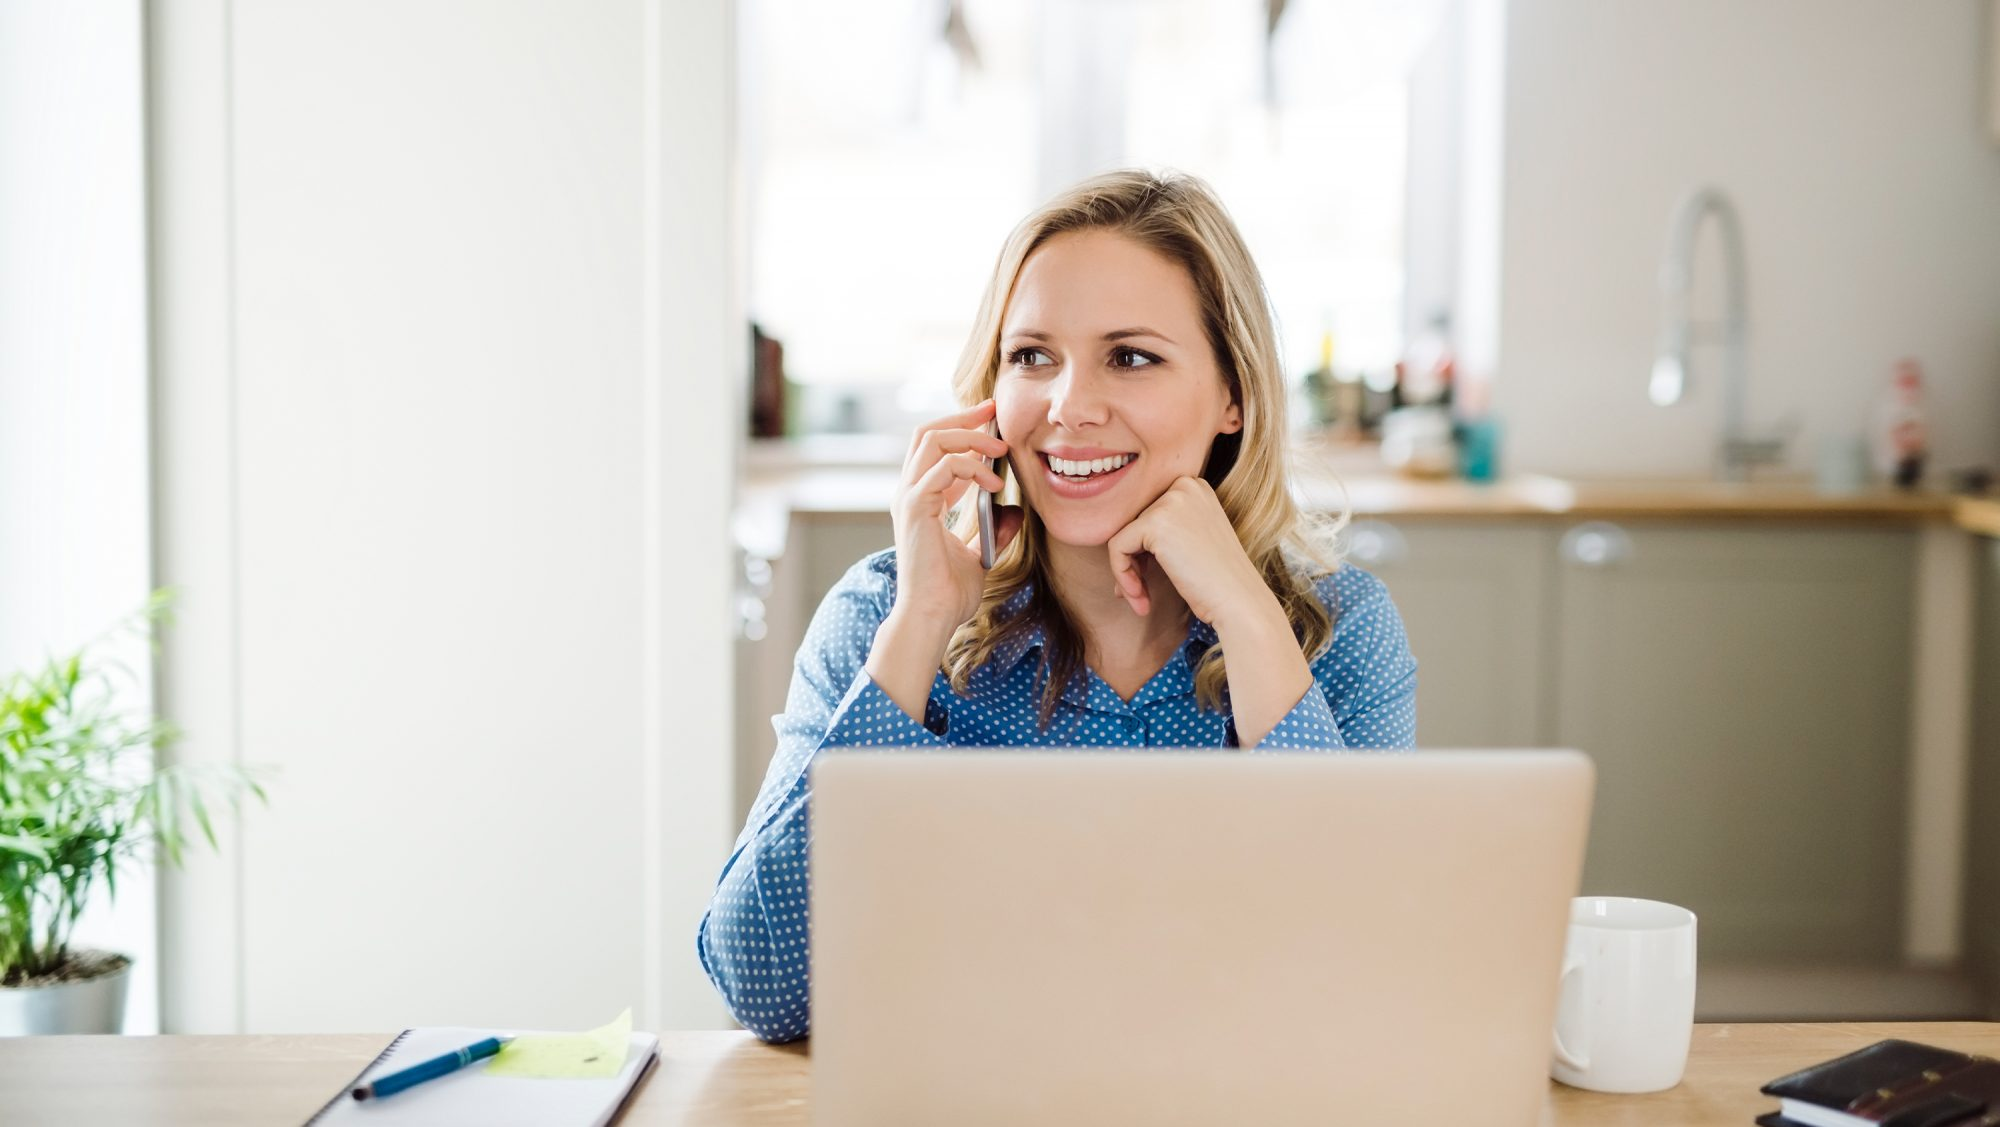 Blonde woman on the phone working at a desk on her laptop